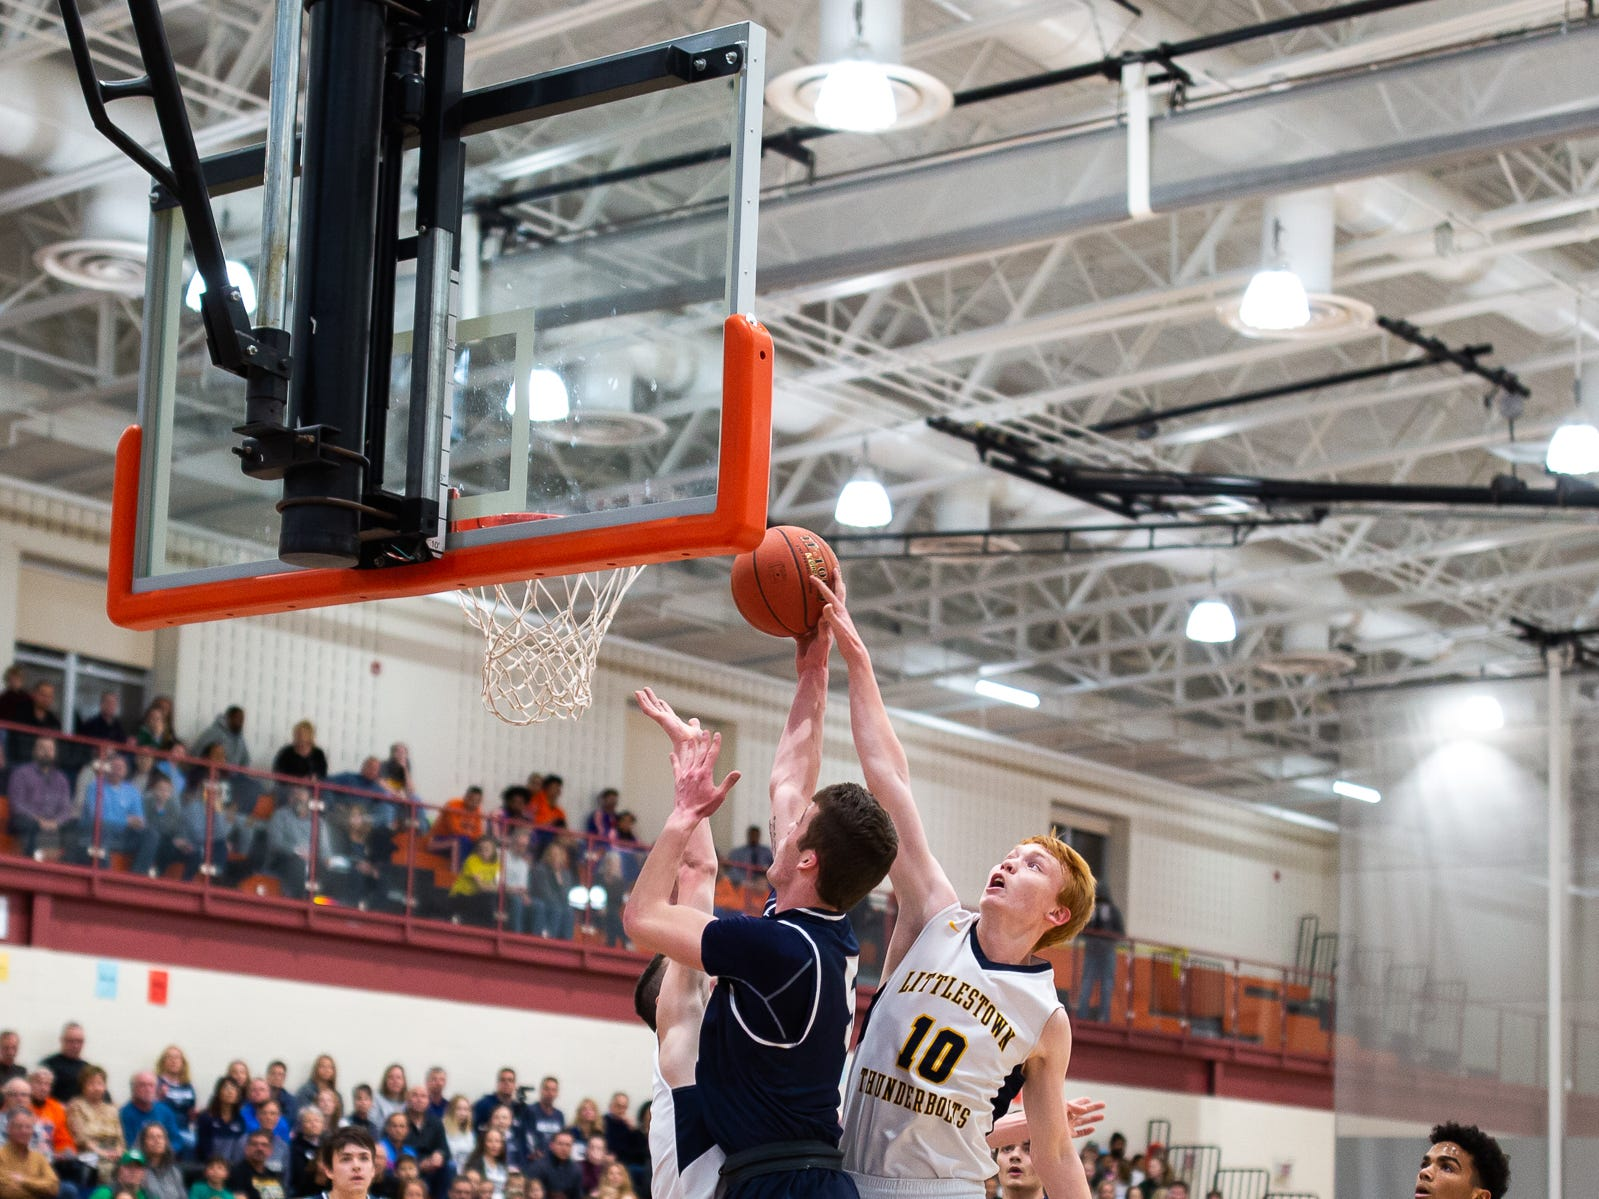 Littlestown's Daniel Gazmen (10) blocks West York's Andrew LaManna (5) as he goes for a layup during the first half of the YAIAA boys' basketball quarterfinals between Littlestown and West York, Saturday, Feb. 9, 2019, at Central York High School. West York led Littlestown 33-31 at the half.